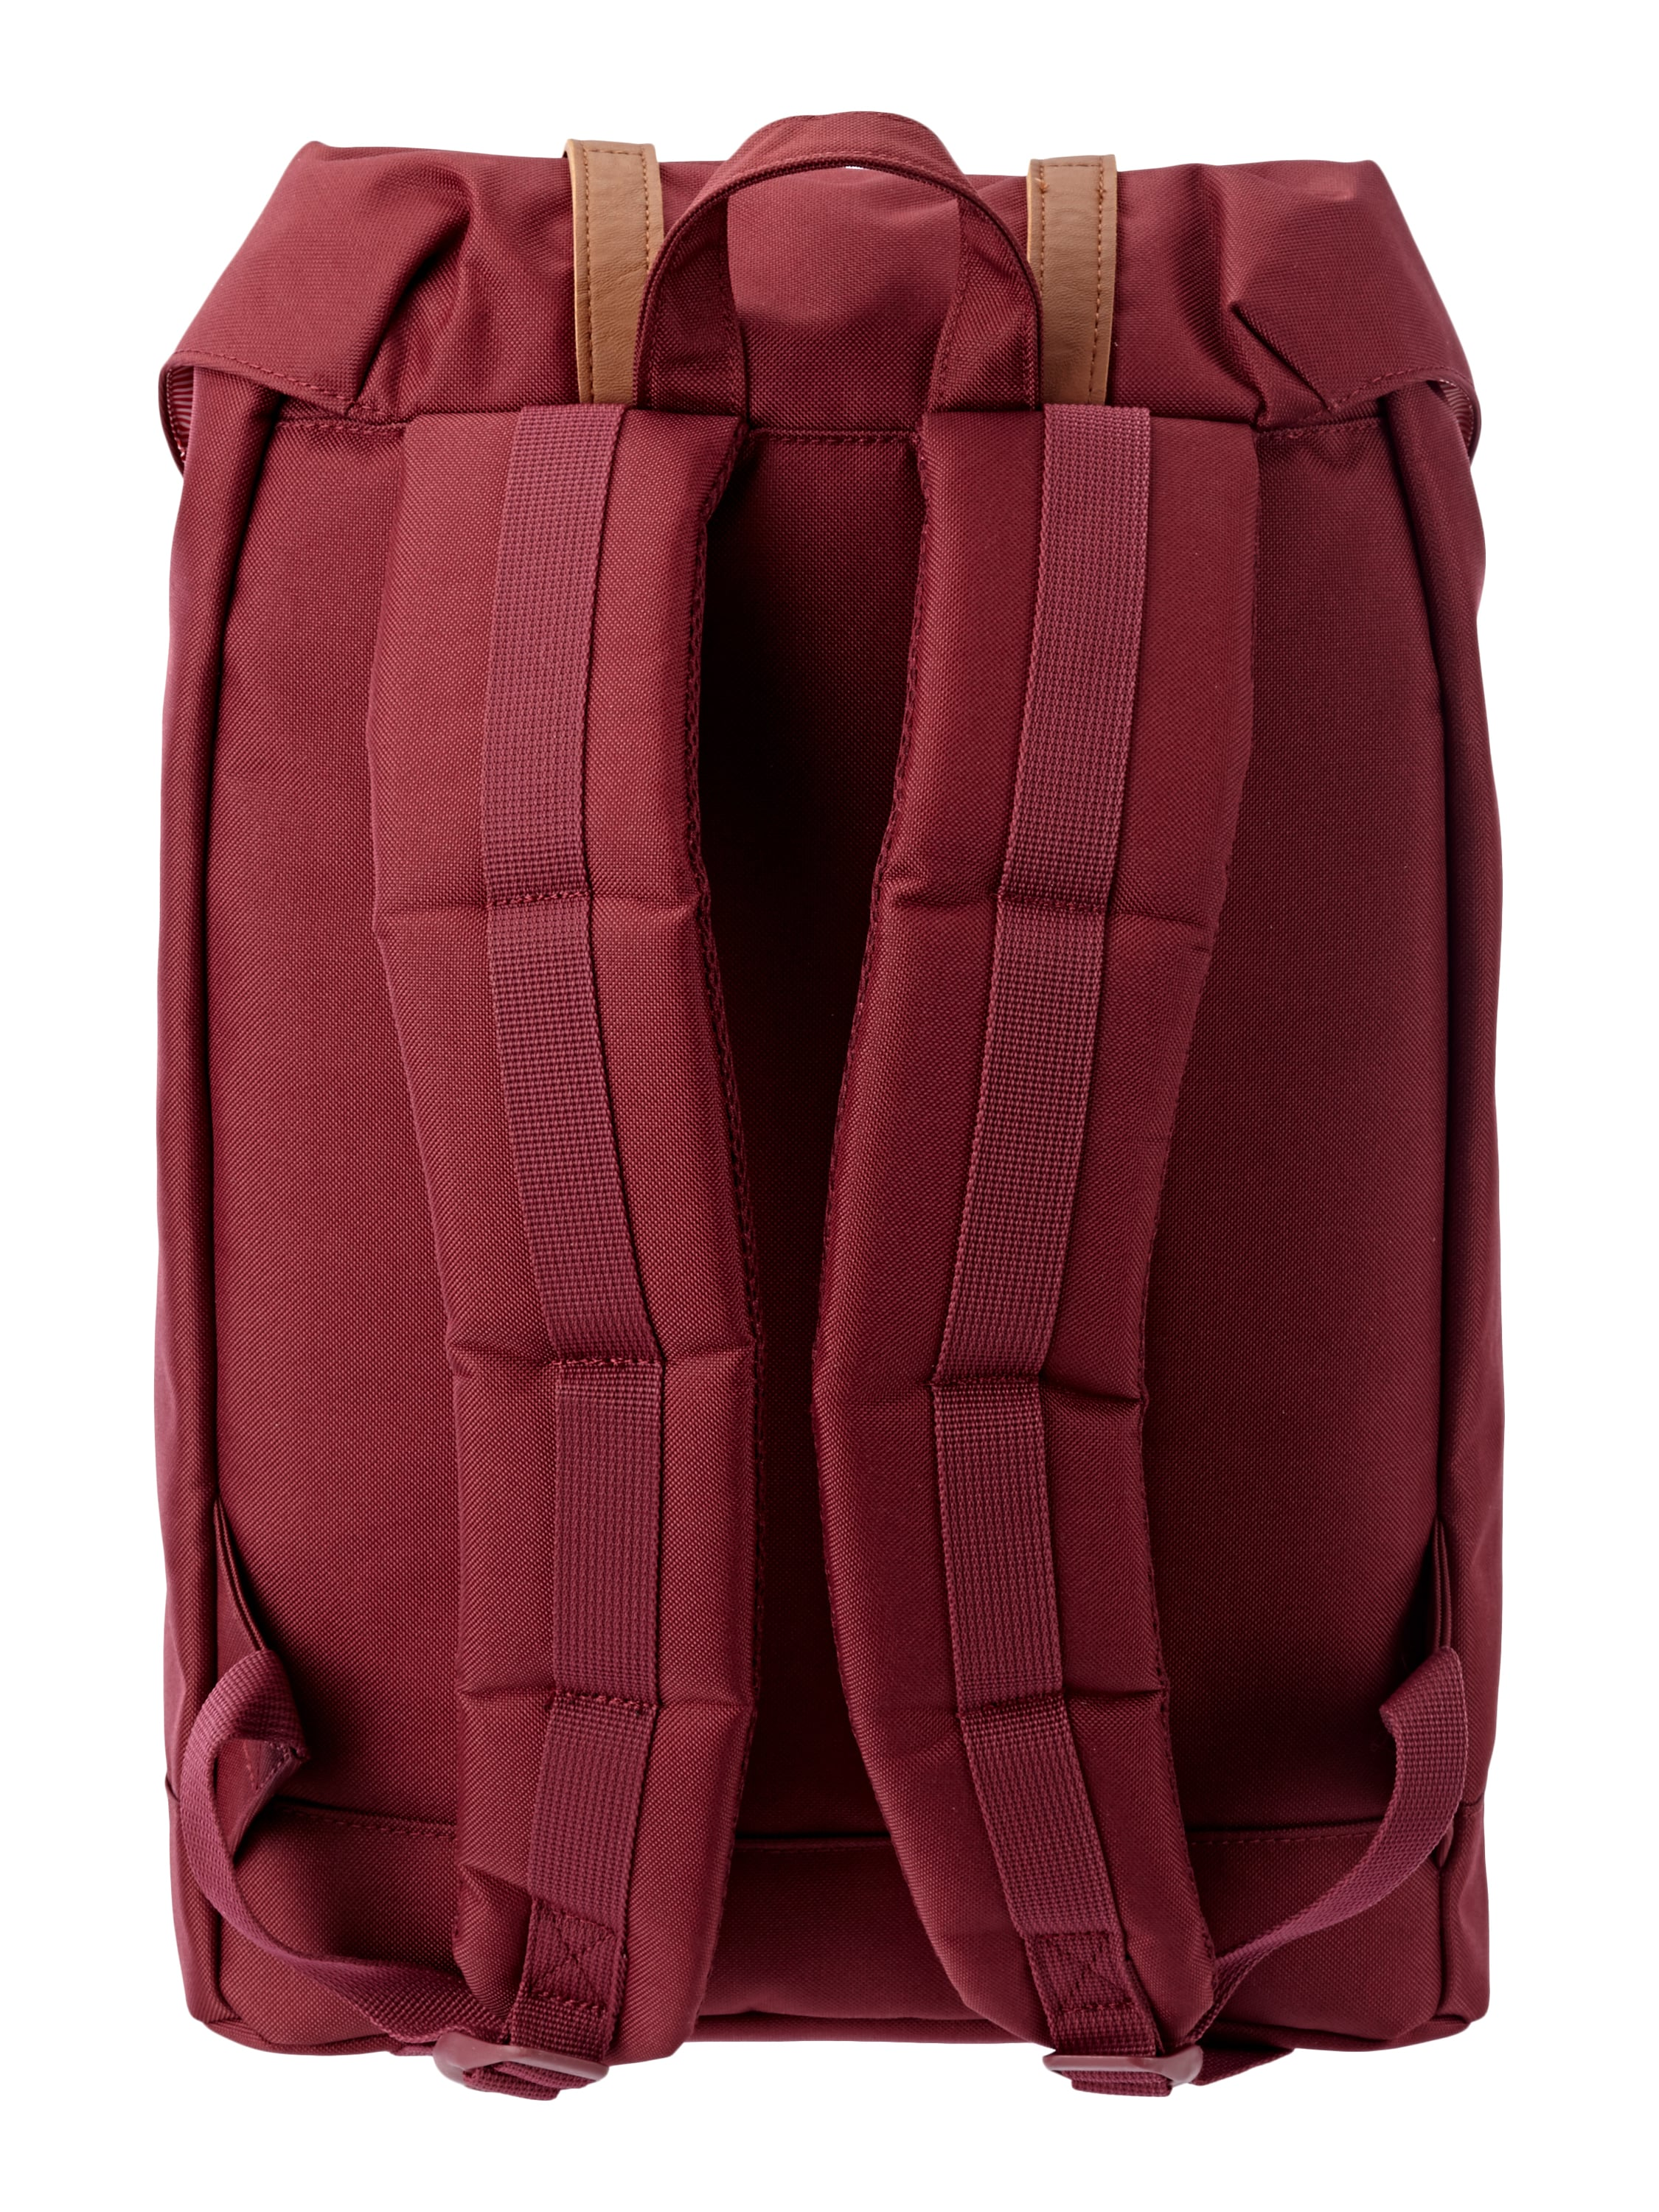 herschel rucksack mit gepolstertem laptopfach in rot online kaufen 9600186 p c online shop. Black Bedroom Furniture Sets. Home Design Ideas